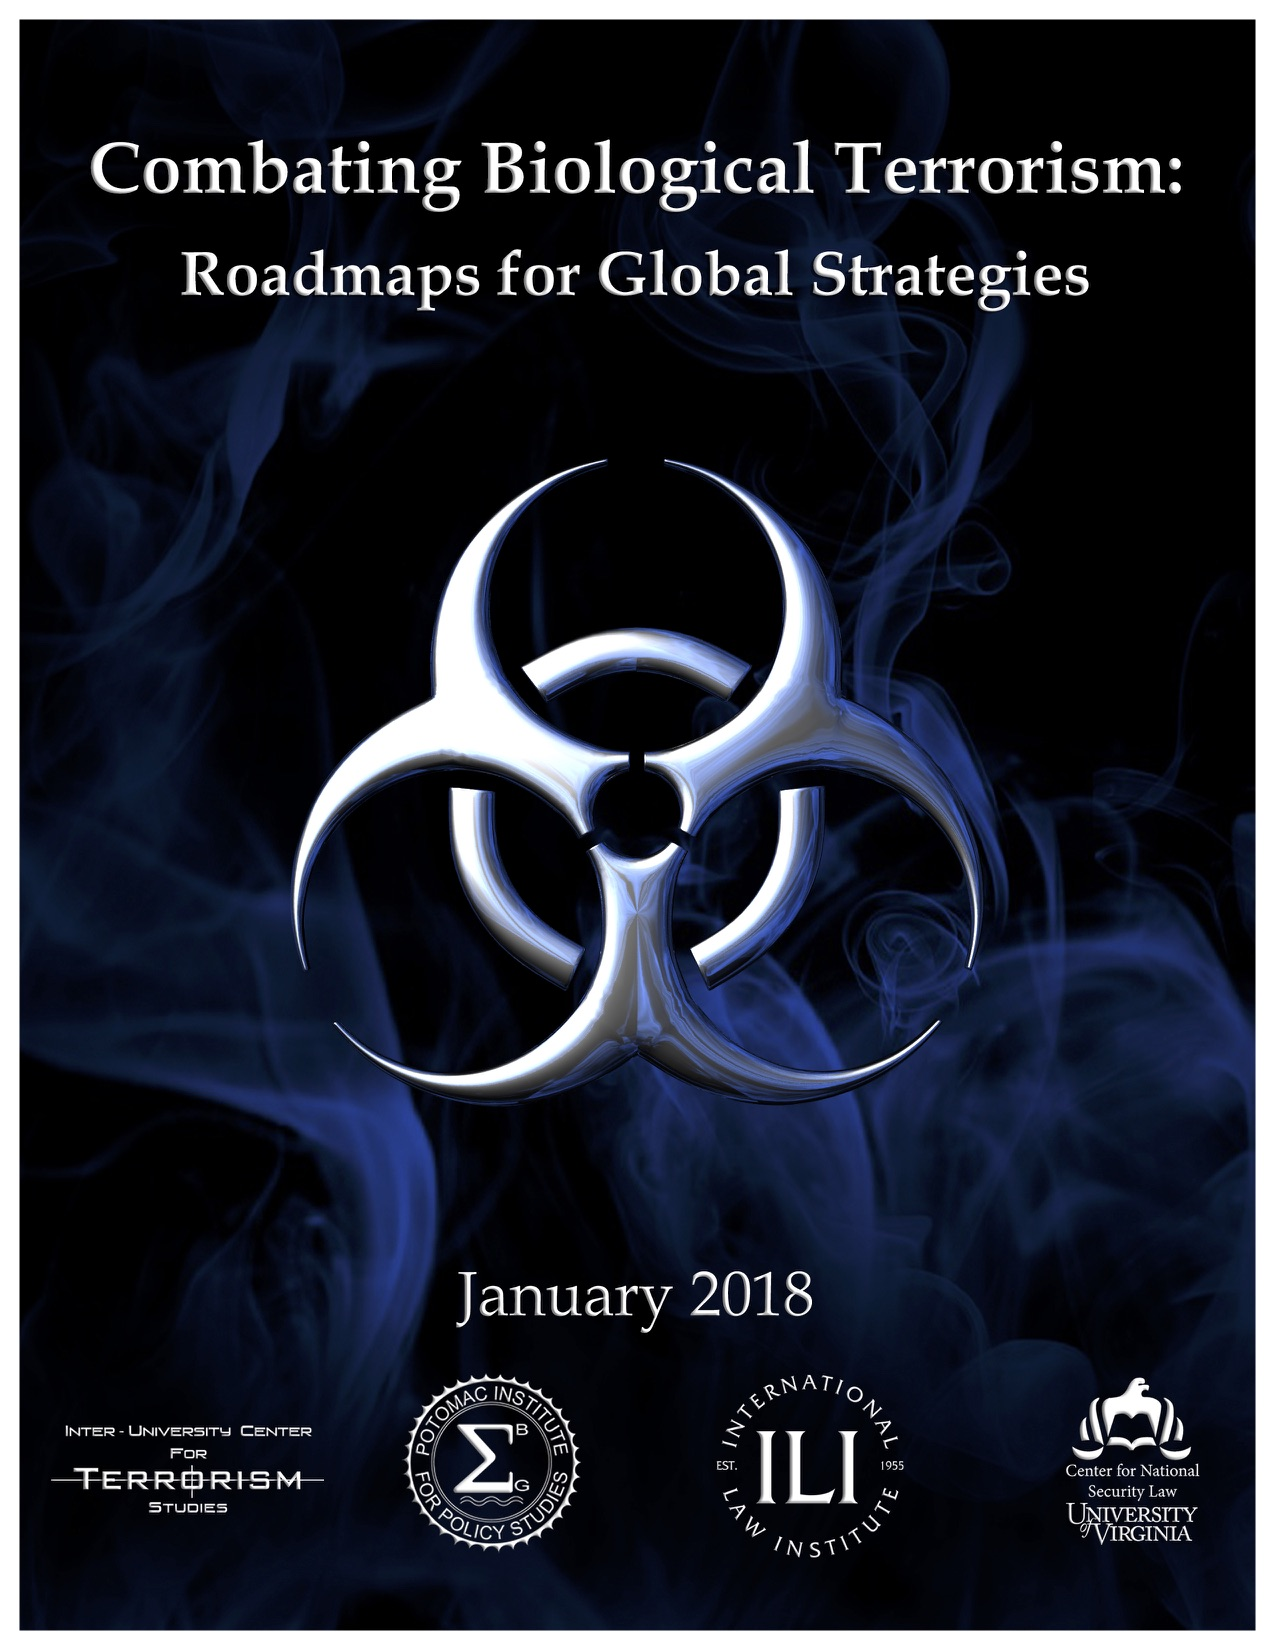 Combating Biological Terrorism: Roadmaps for Global Strategies